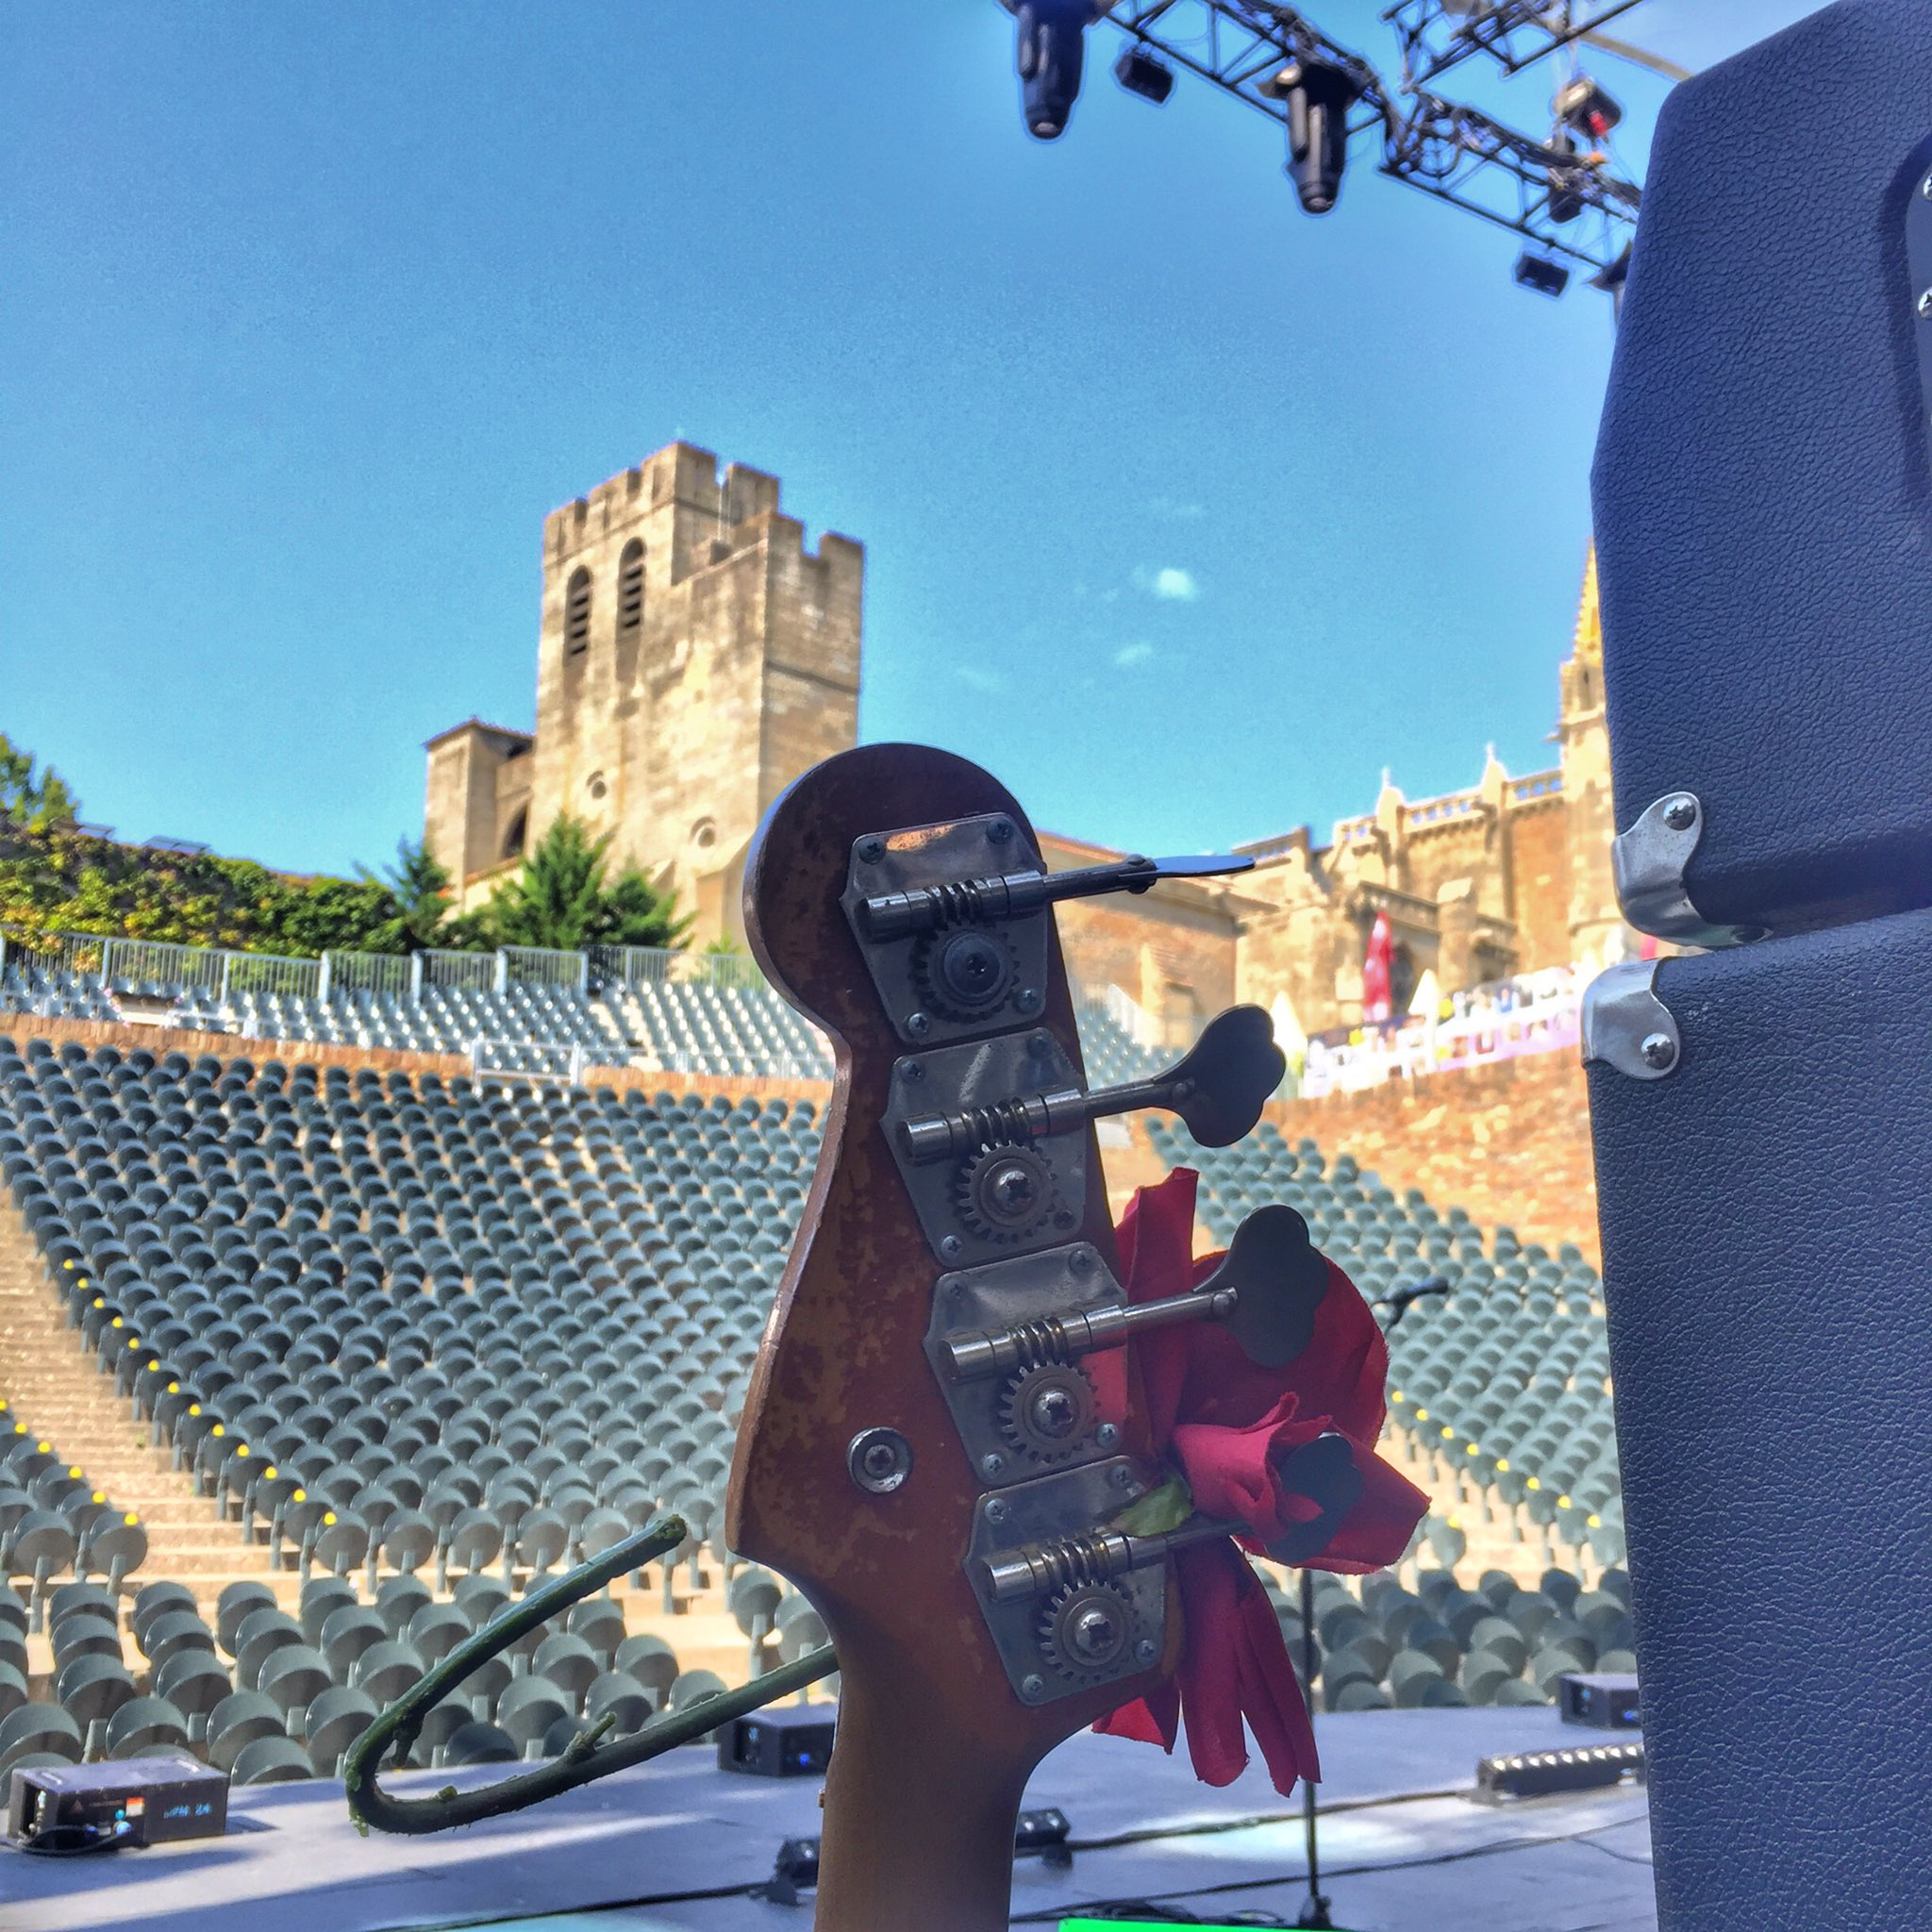 Sound check all finished ....ready for tonight Carcassonne https://t.co/SLzLUopxQt